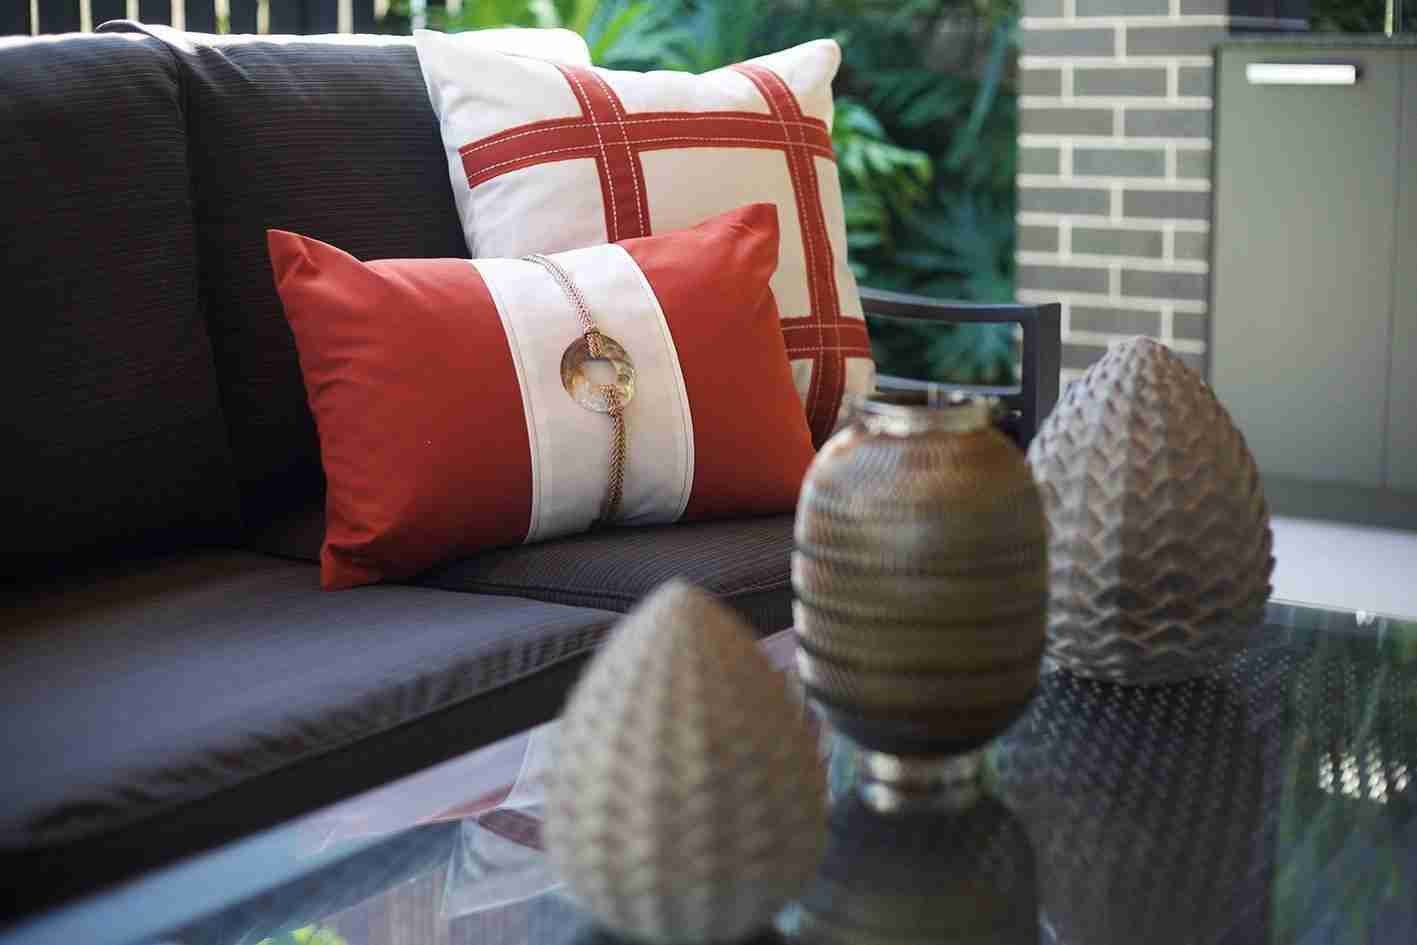 Bandhini Homewear Design Lounge Cushion Rust / 22 x 22 Outdoor Grid Rust Lounge Cushion 55 x 55 cm